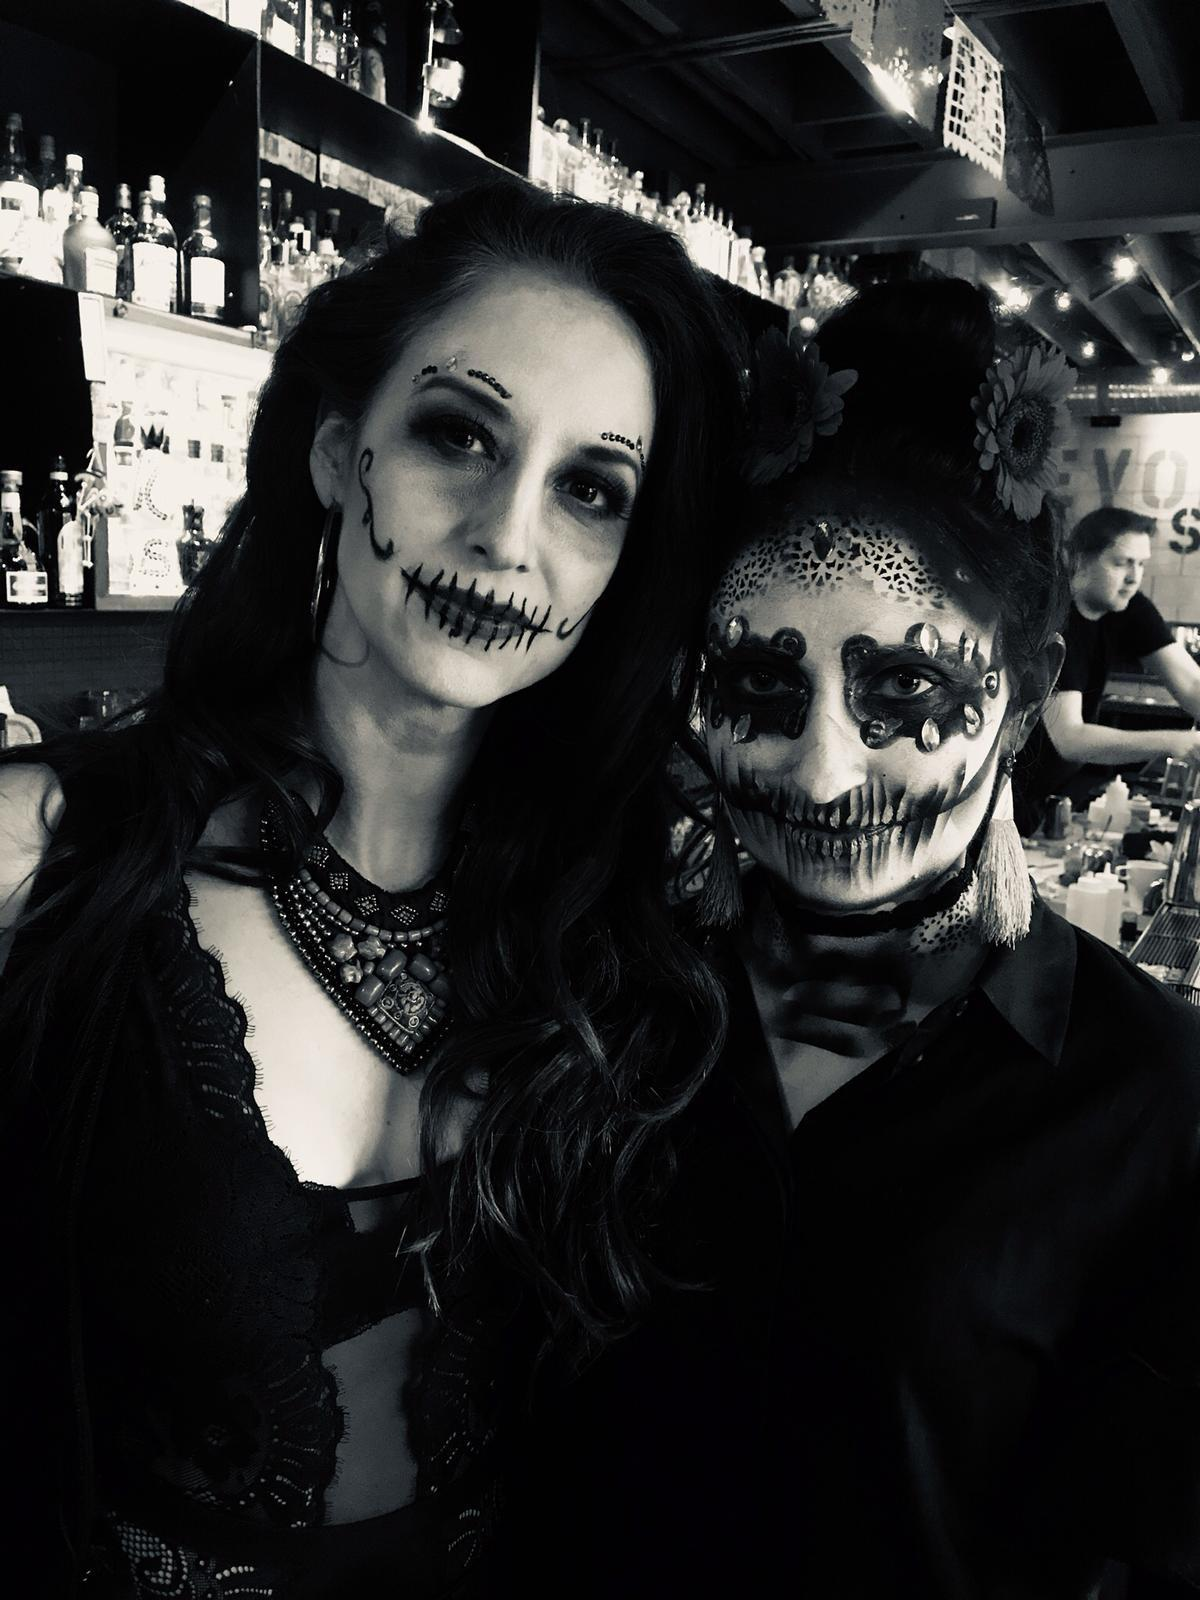 Get Dressed Up for This Upcoming 'Day of the Dead' Party on Main Street